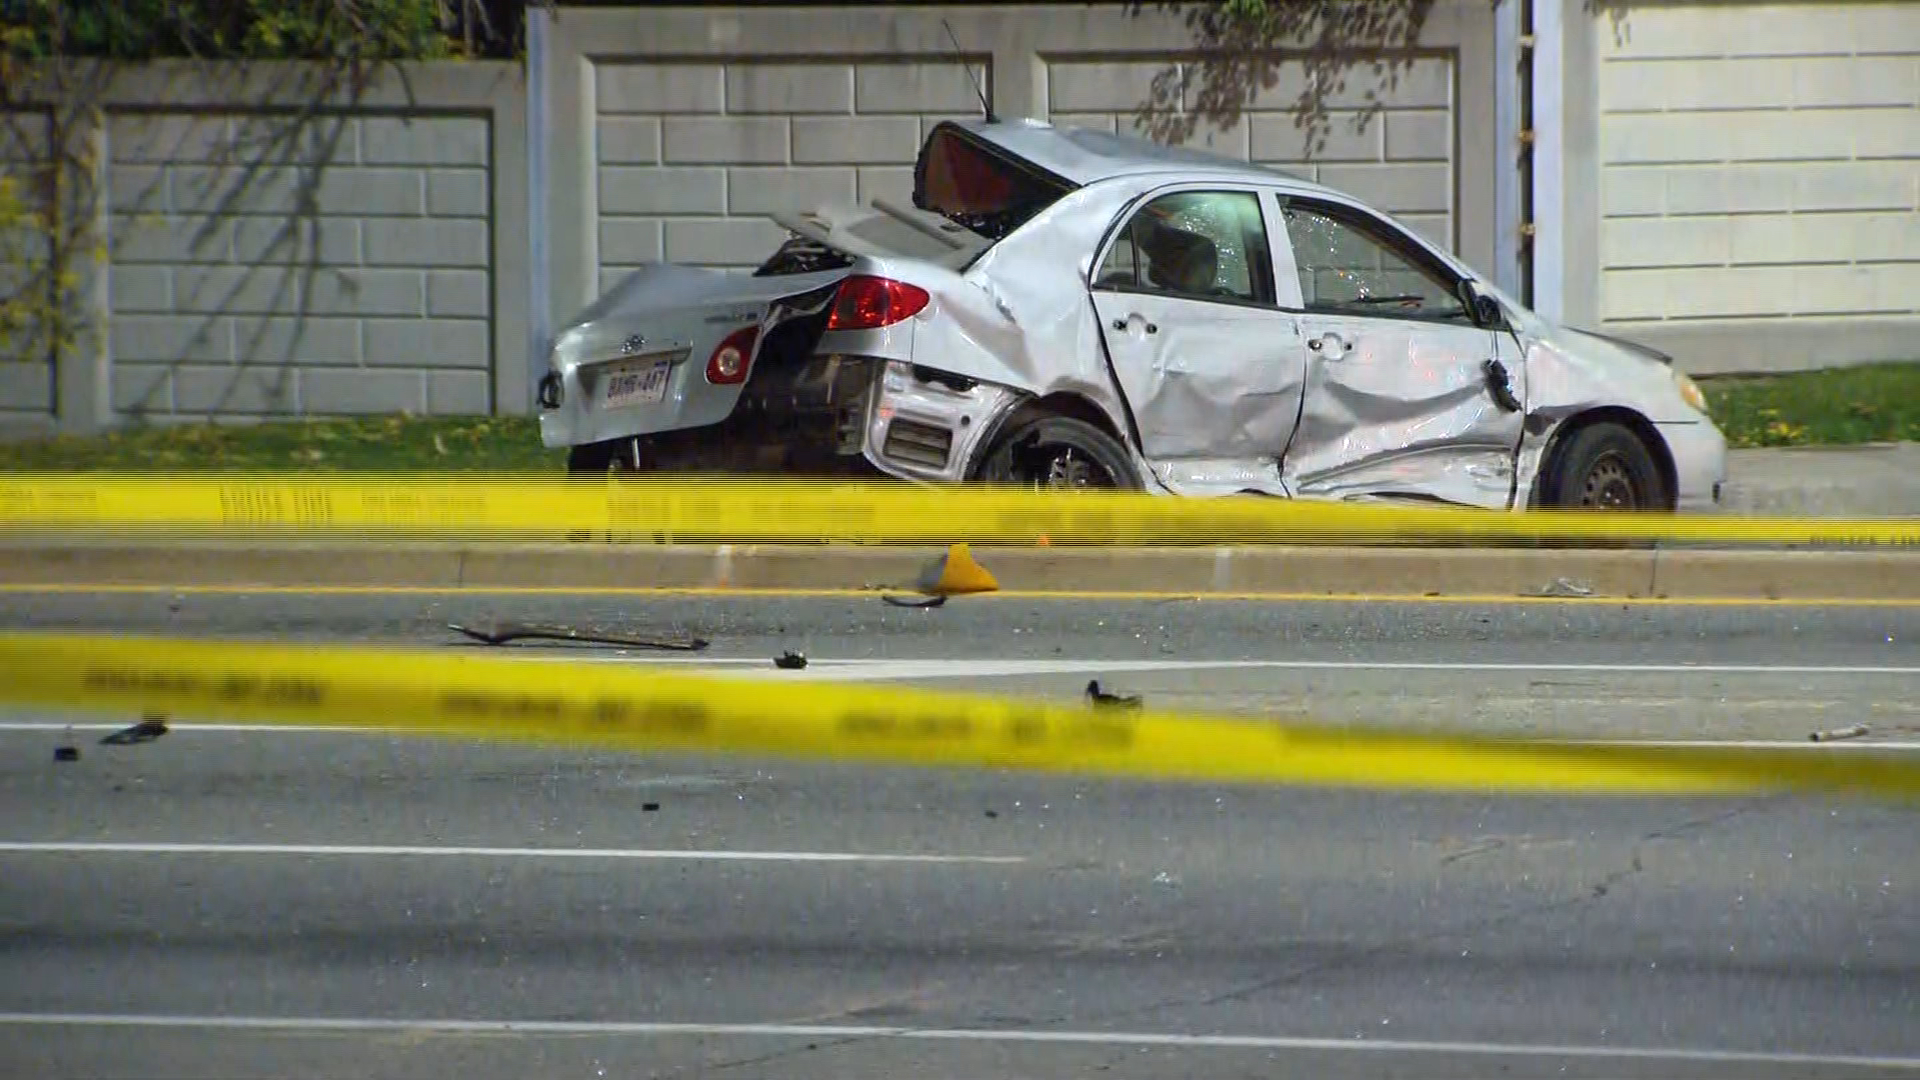 1 injured in 2-vehicle crash in Brampton